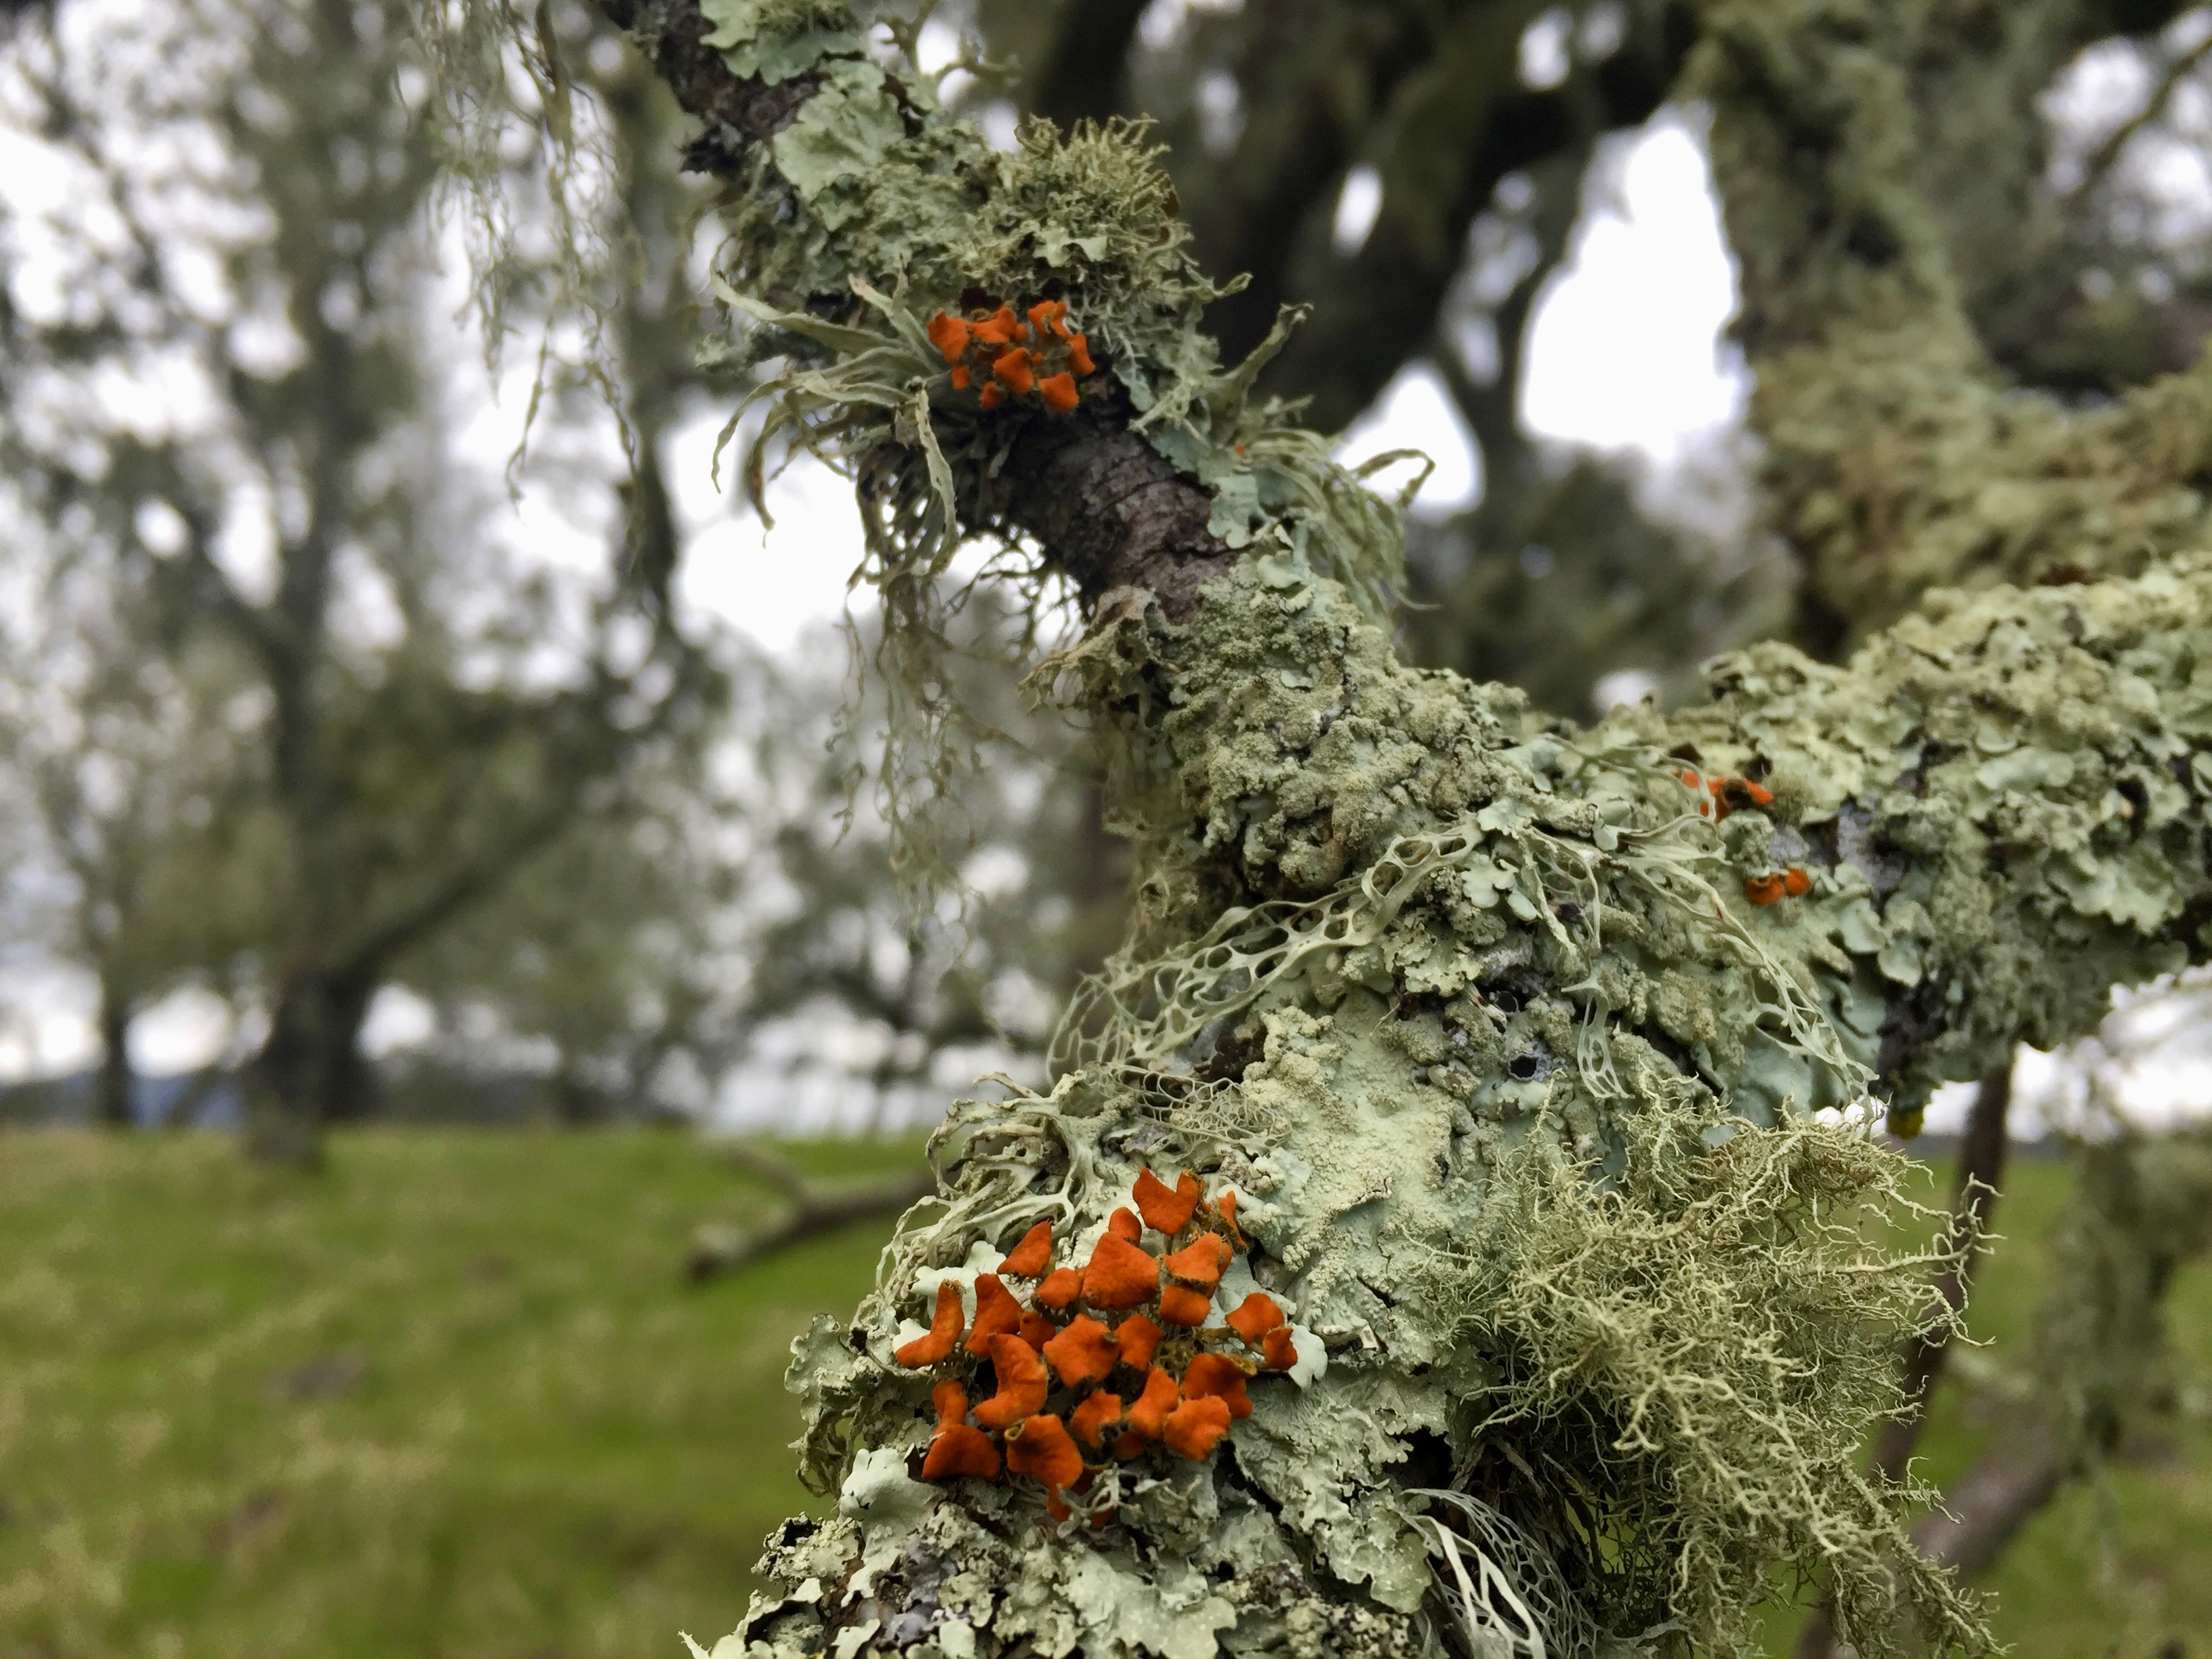 New research has found that lichen communities, which are essential to life across conifer forests, are not always returning after wildfires.